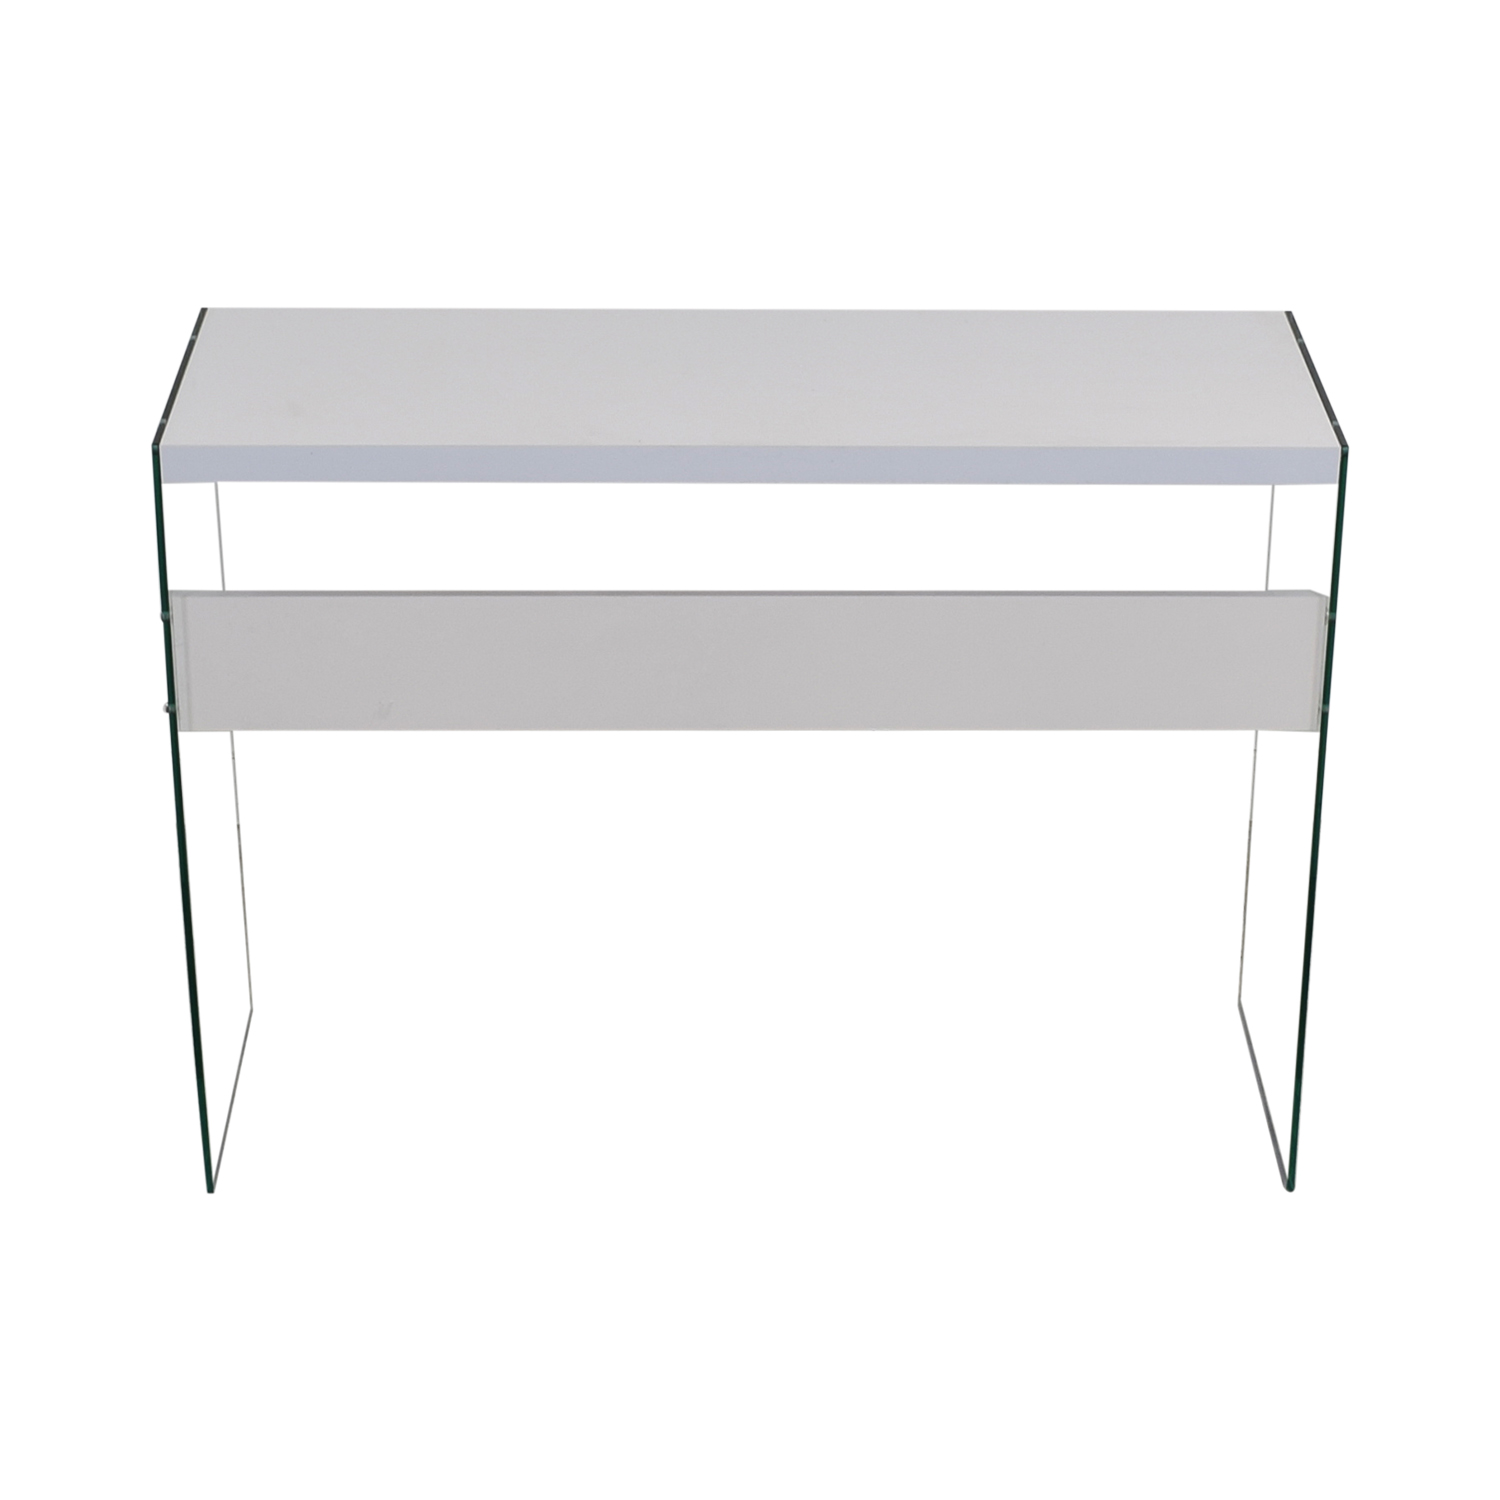 White and Ghost Table Stand / Tables